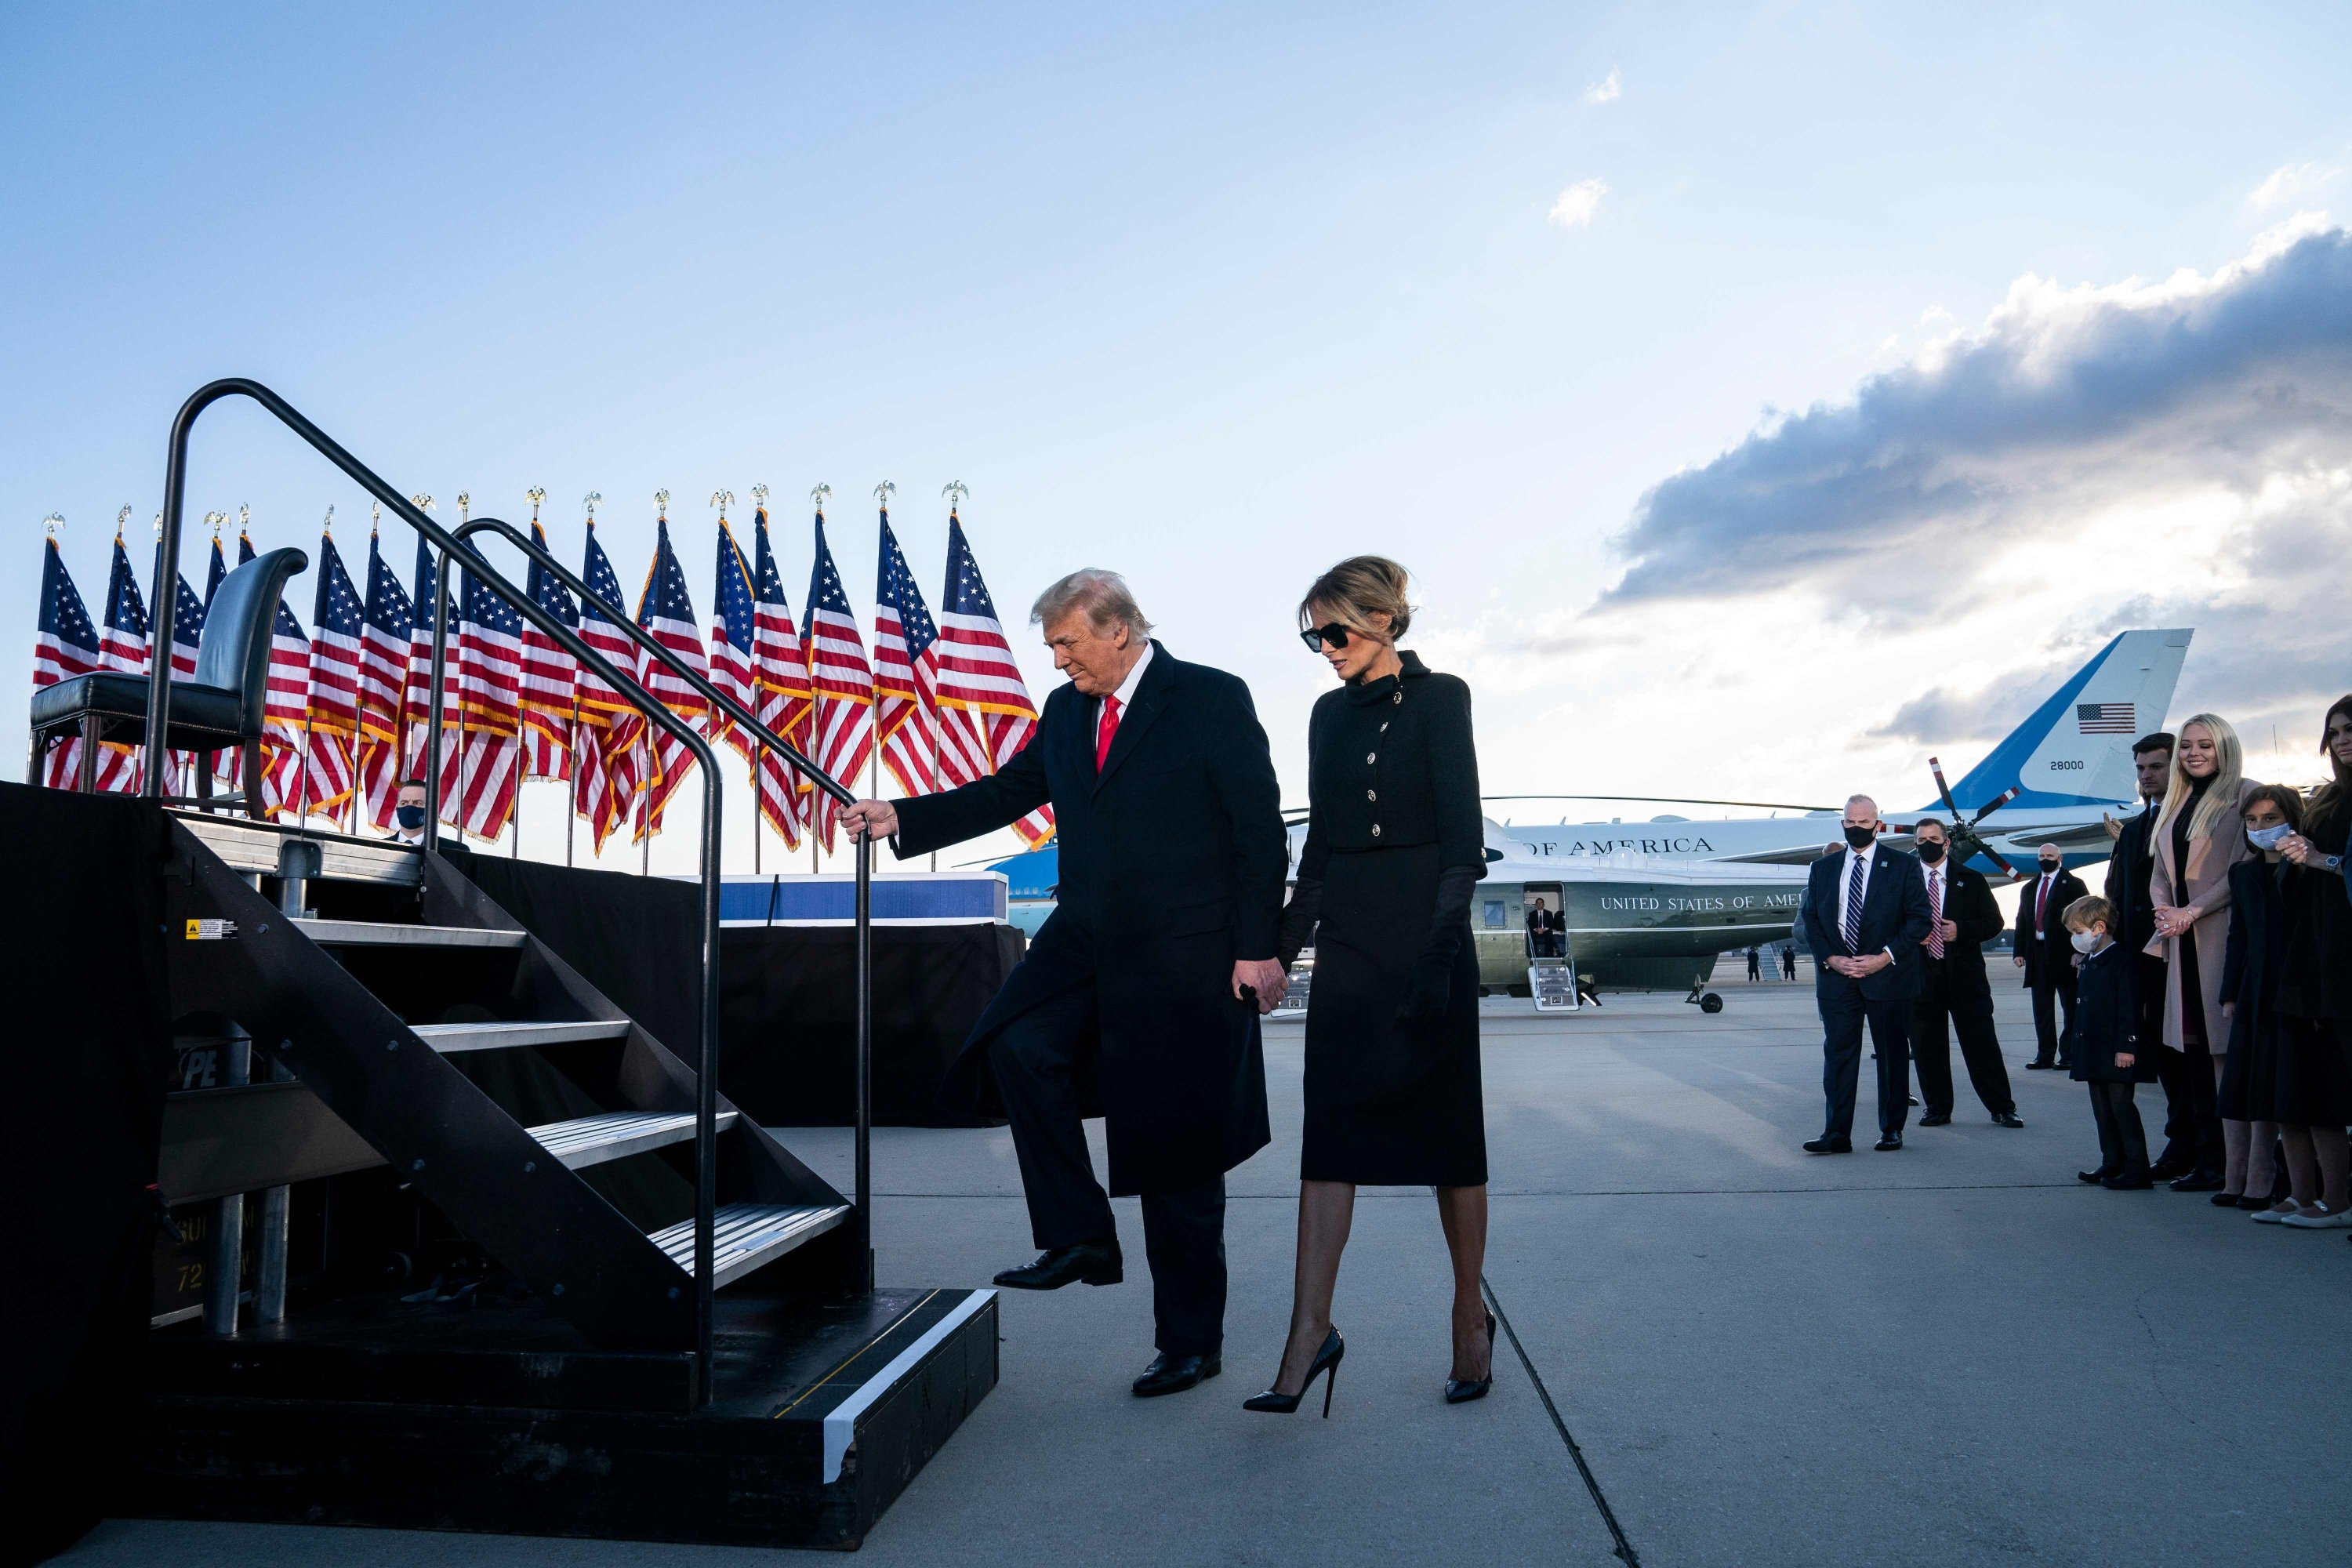 Outgoing U.S. President Donald Trump and first lady Melania Trump take the stage prior to delivering remarks at Joint Base Andrews, Maryland, U.S., Jan. 20, 2021. (AFP Photo)